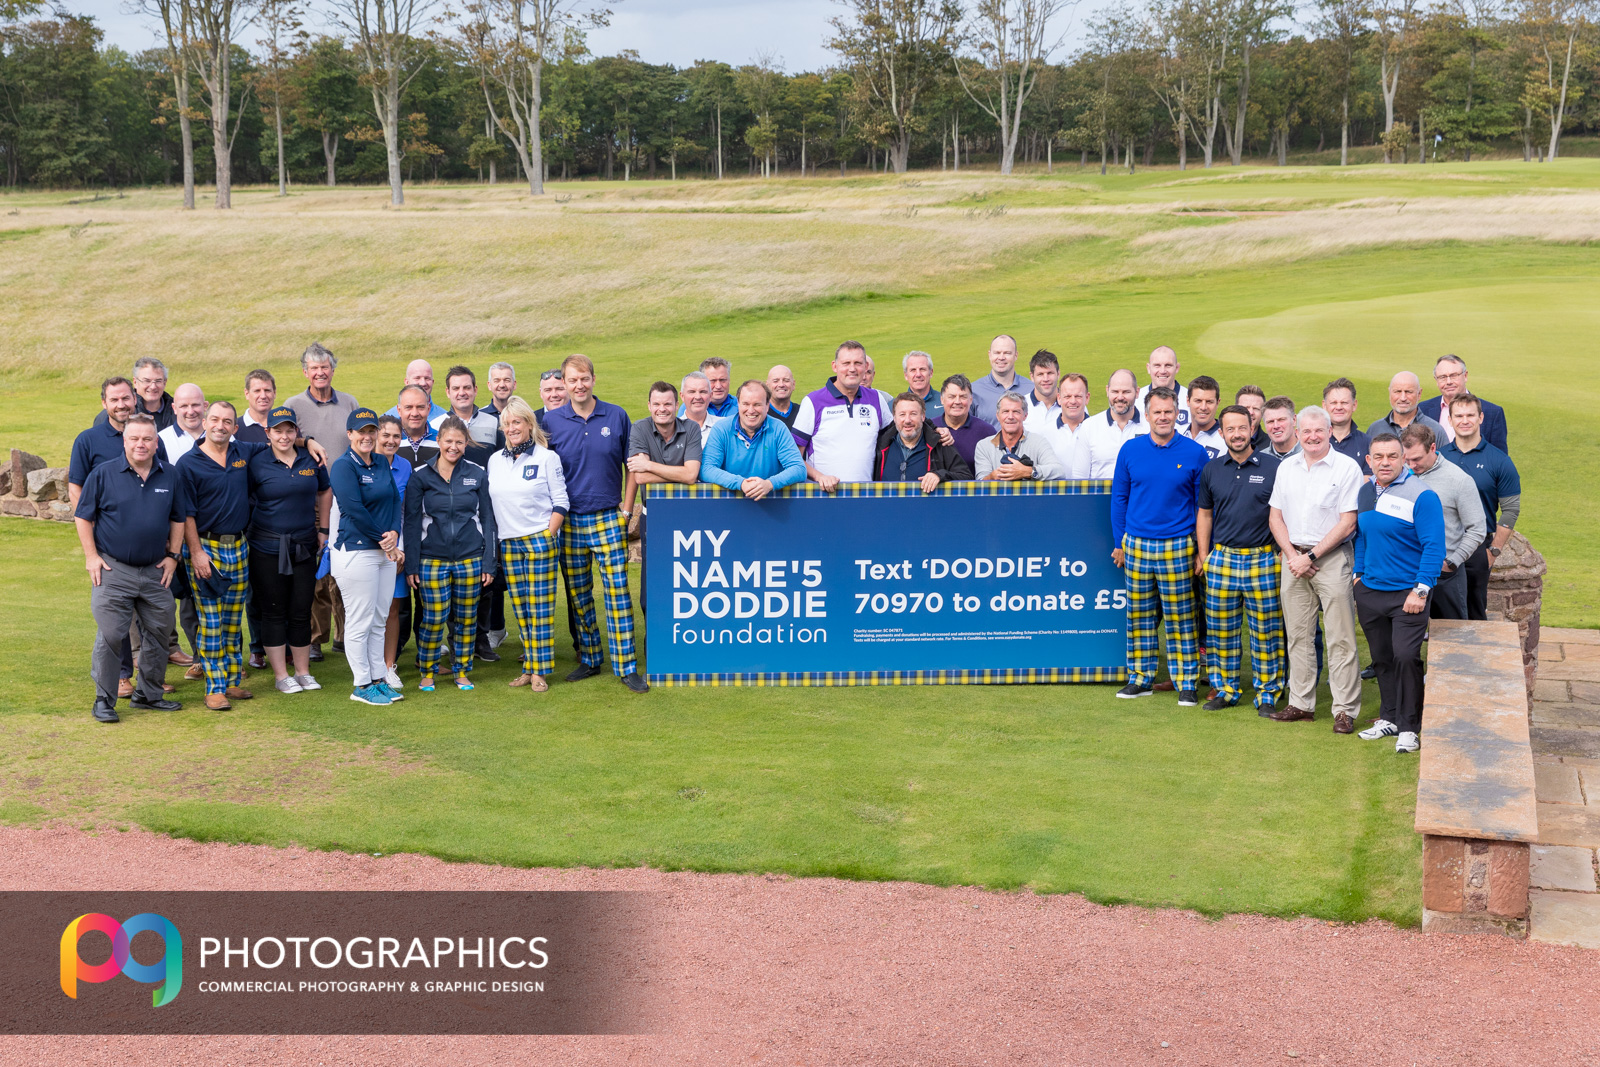 charity-golf-pr-event-photography-glasgow-edinburgh-scotland-7.jpg